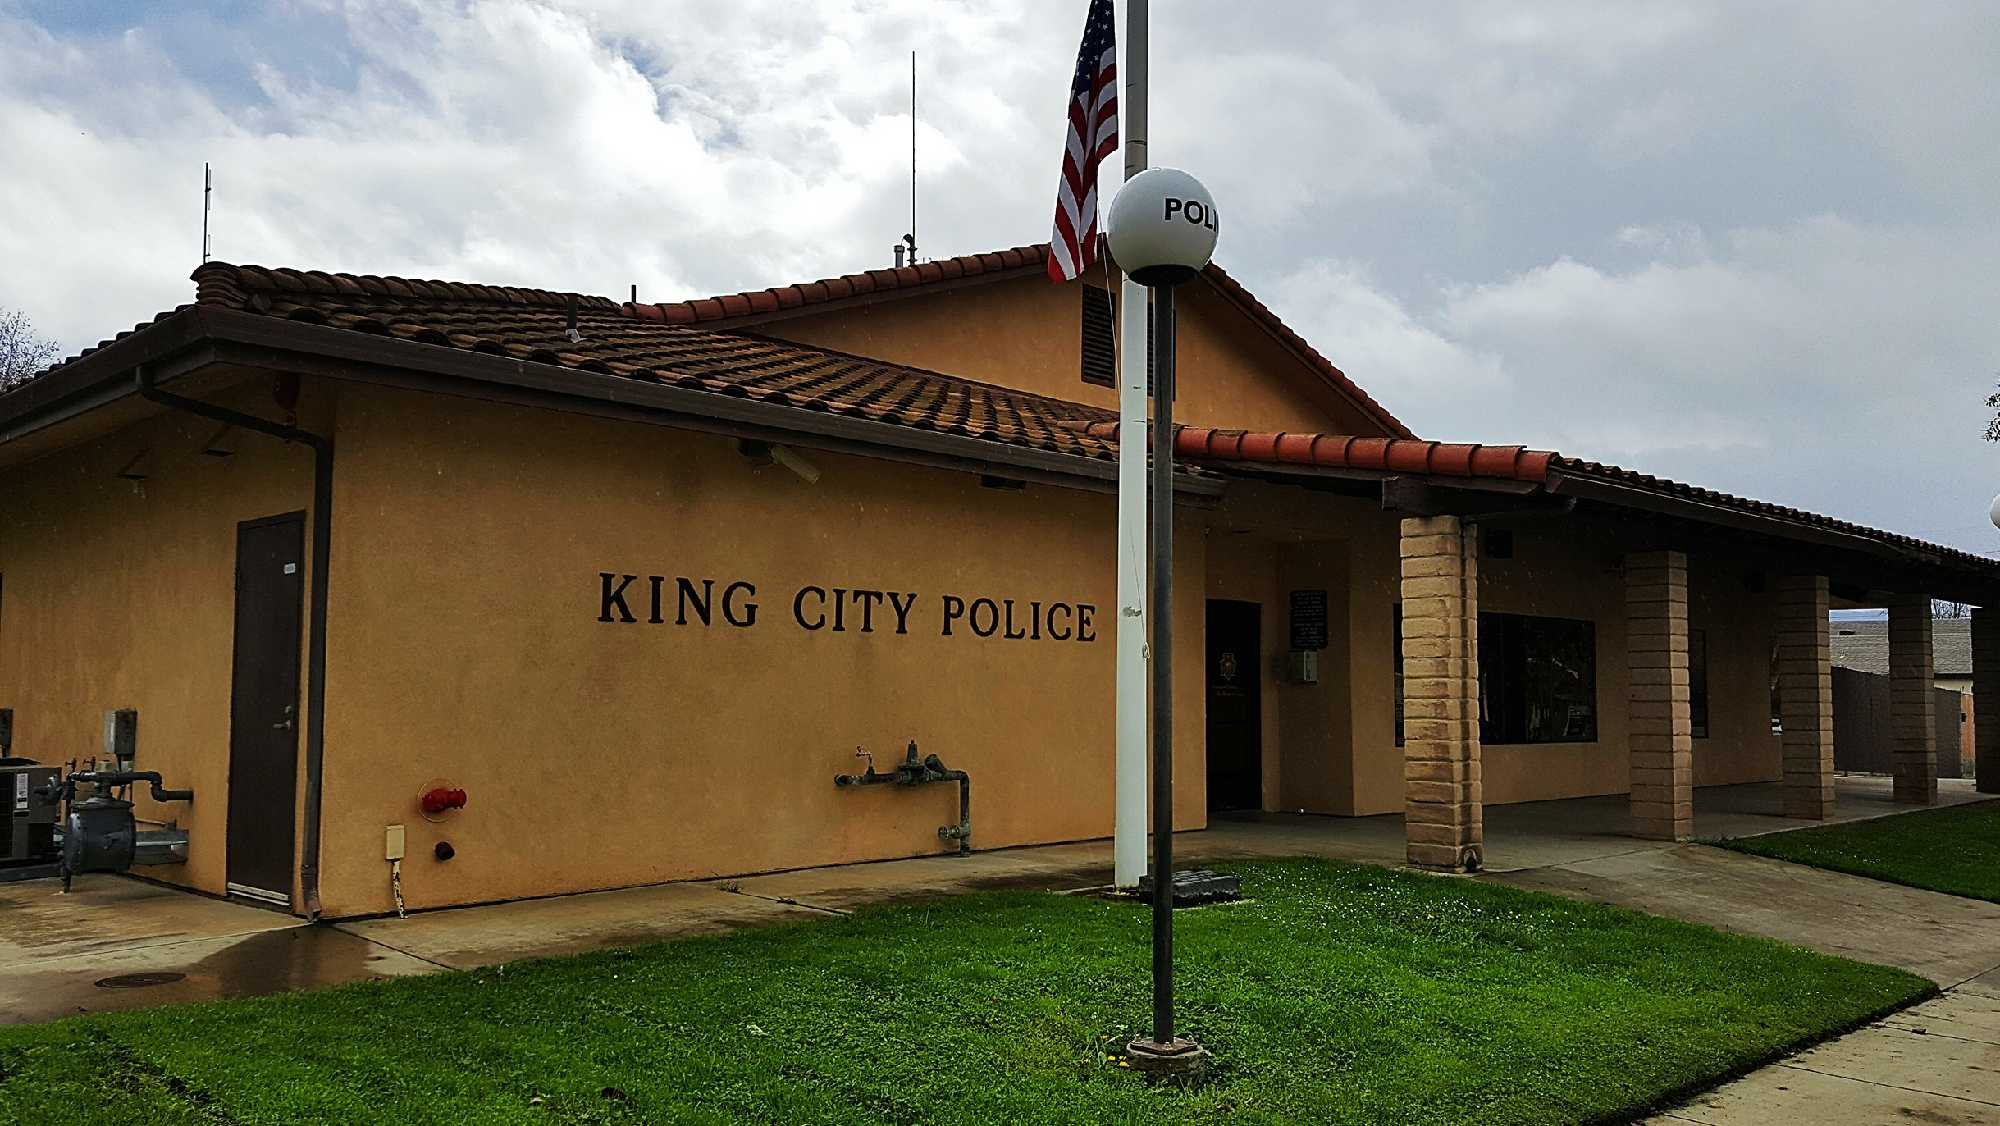 King City Police Department